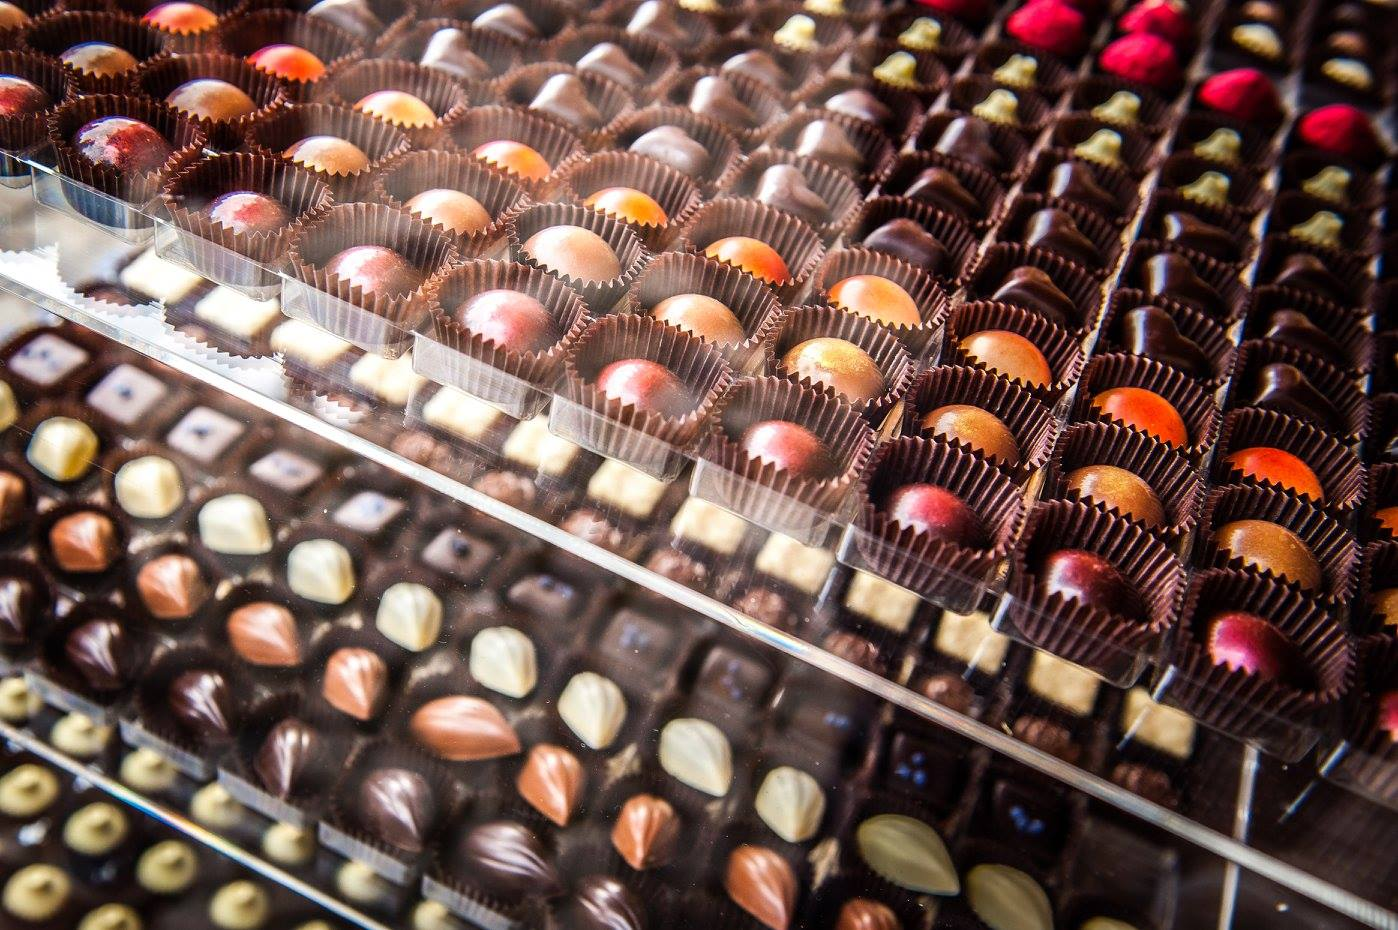 Chocolate and Candy Festival